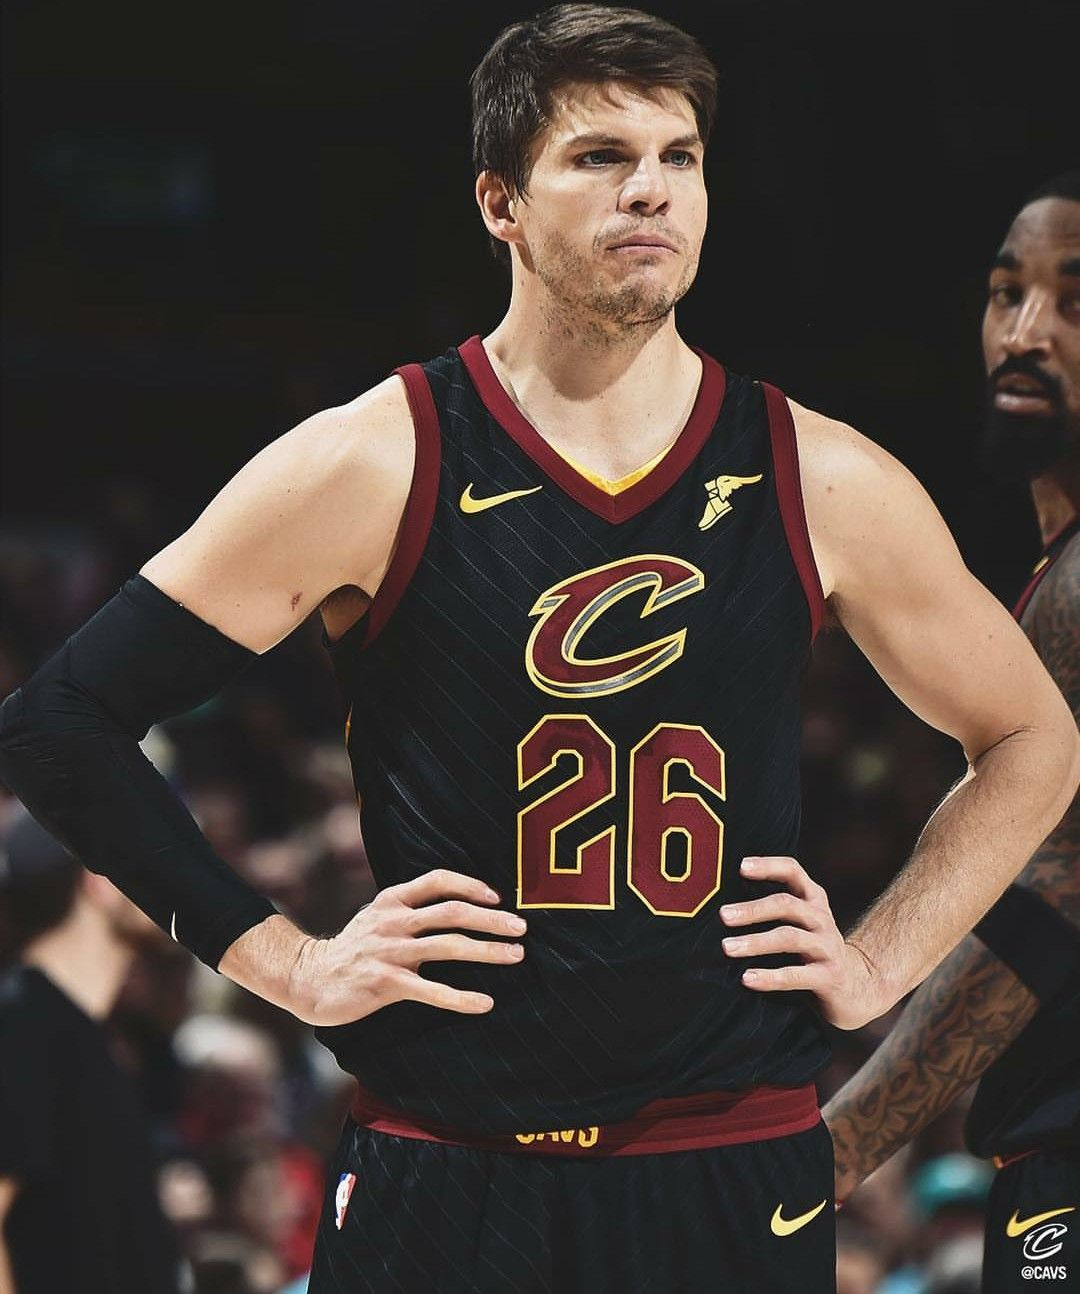 outlet store 9d1d6 40c70 Kyle Korver in the Cleveland Cavaliers statement jersey ...